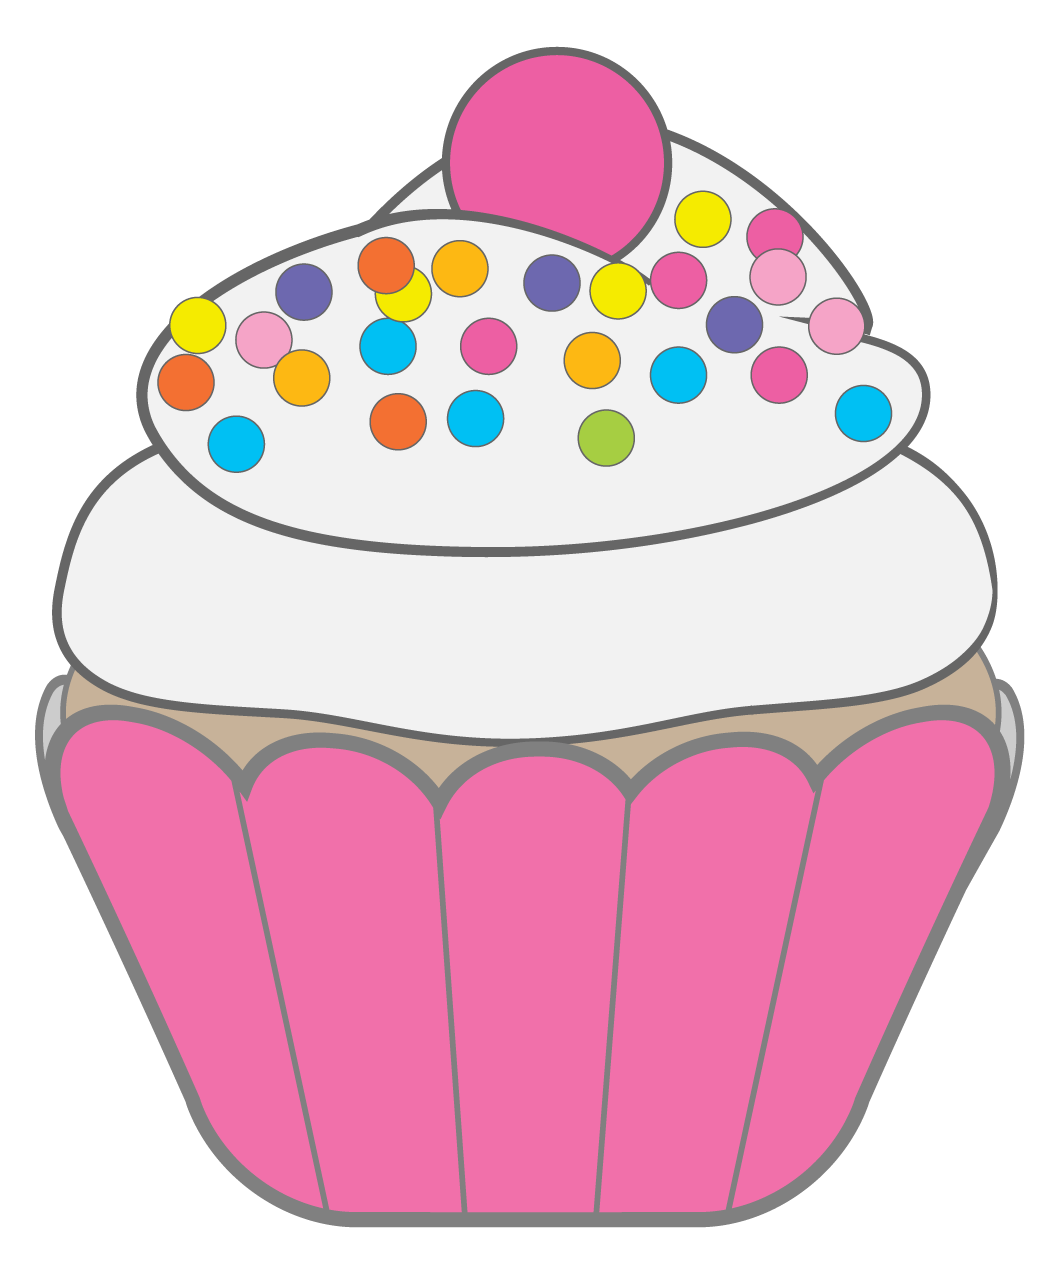 1050x1274 Cupcakes Muffins Cupcake Pictures, Clip Art And Birthday Clipart